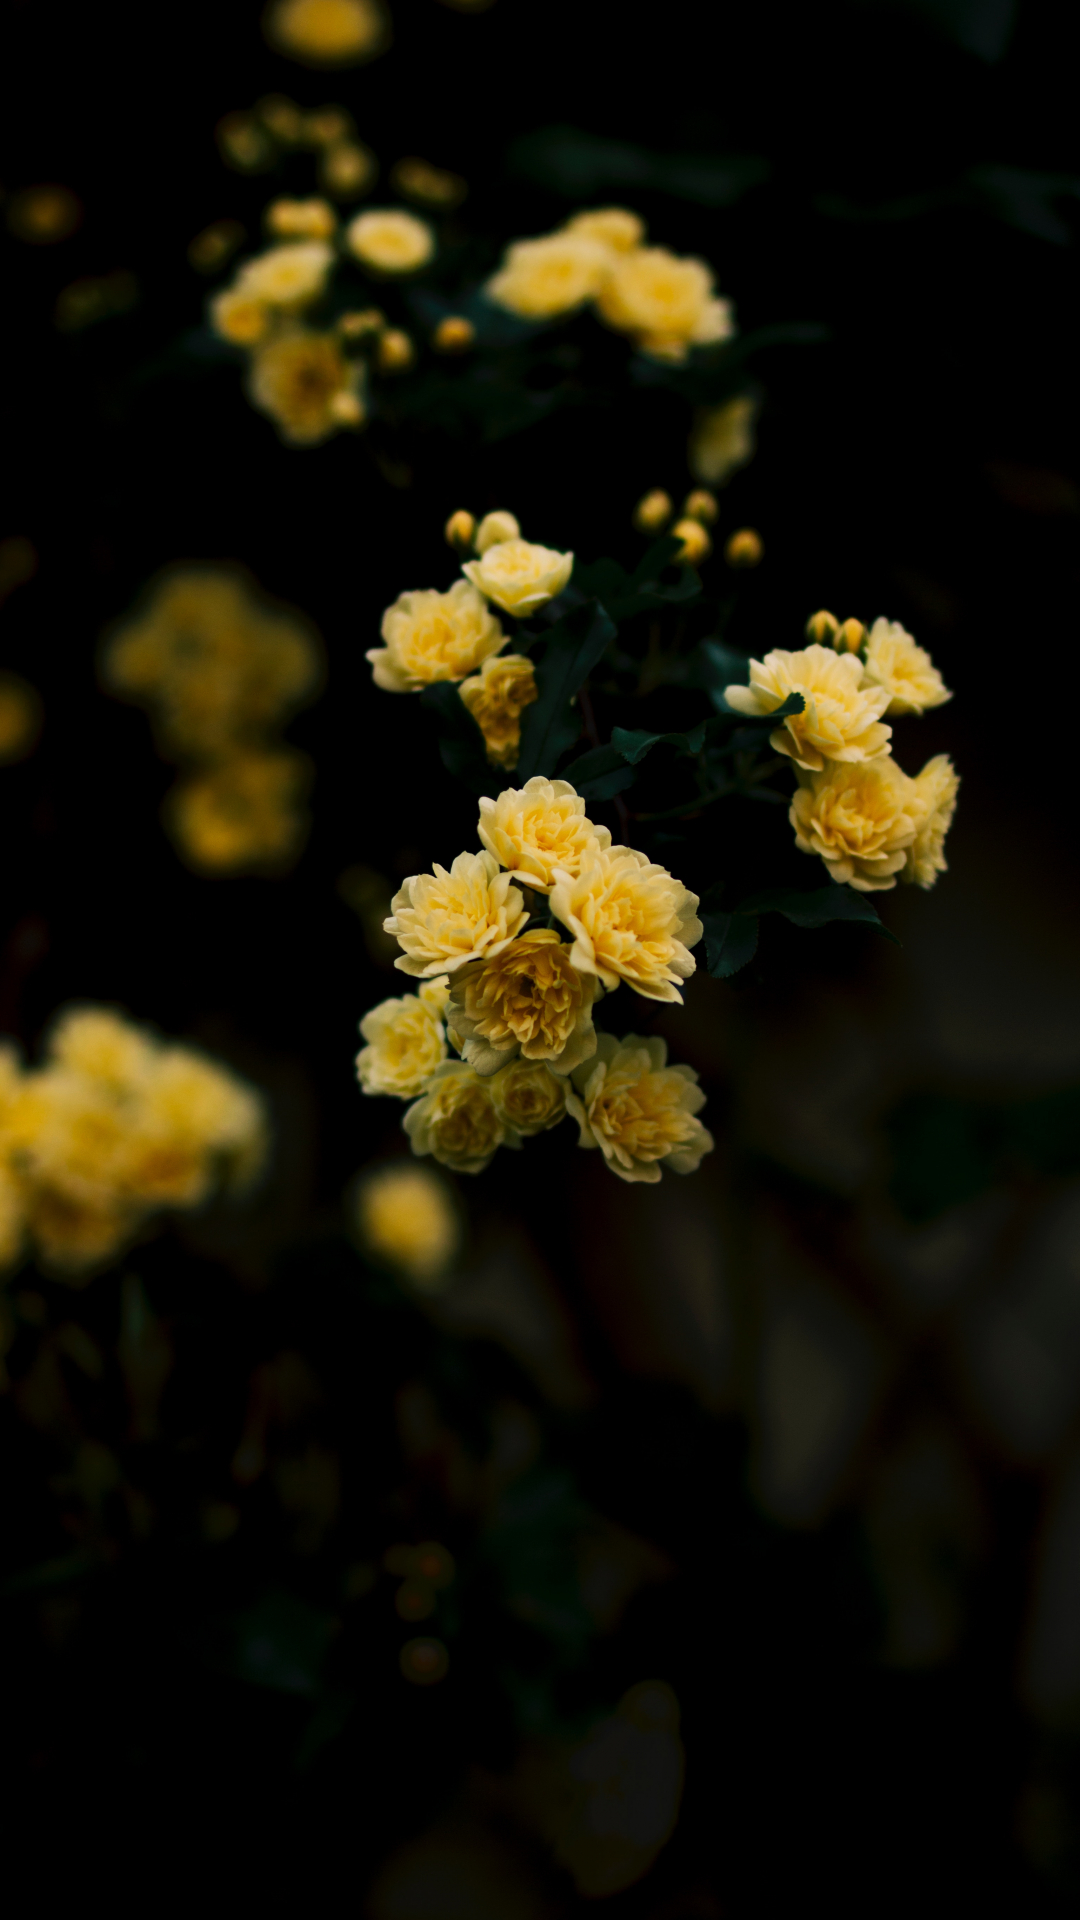 Yellow, Rose Iphone Wallpaper , Yellow Rose Wallpaper For